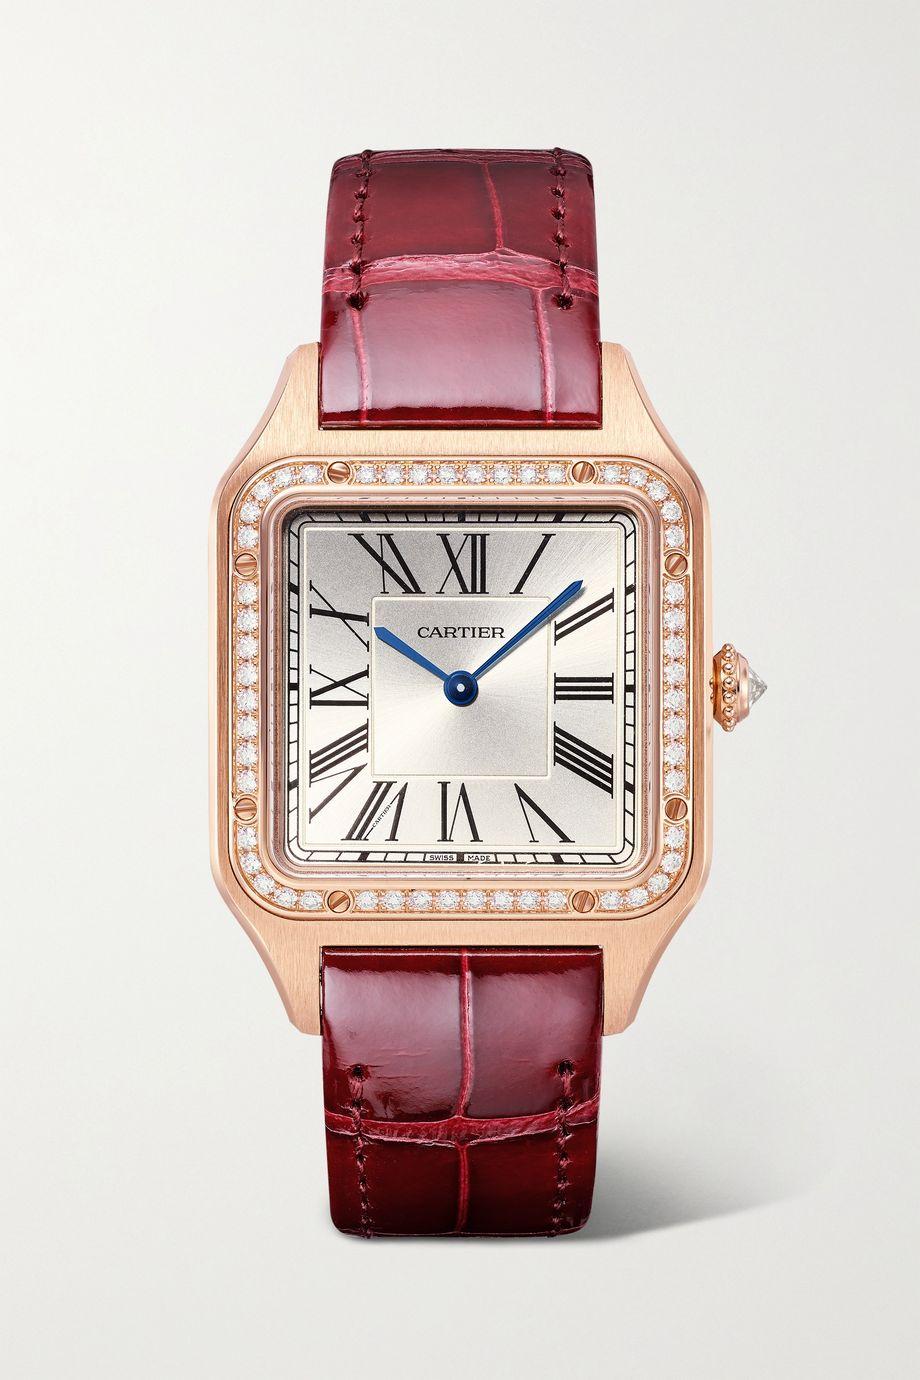 Cartier Santos-Dumont 31.4mm large 18-karat rose gold, alligator and diamond watch